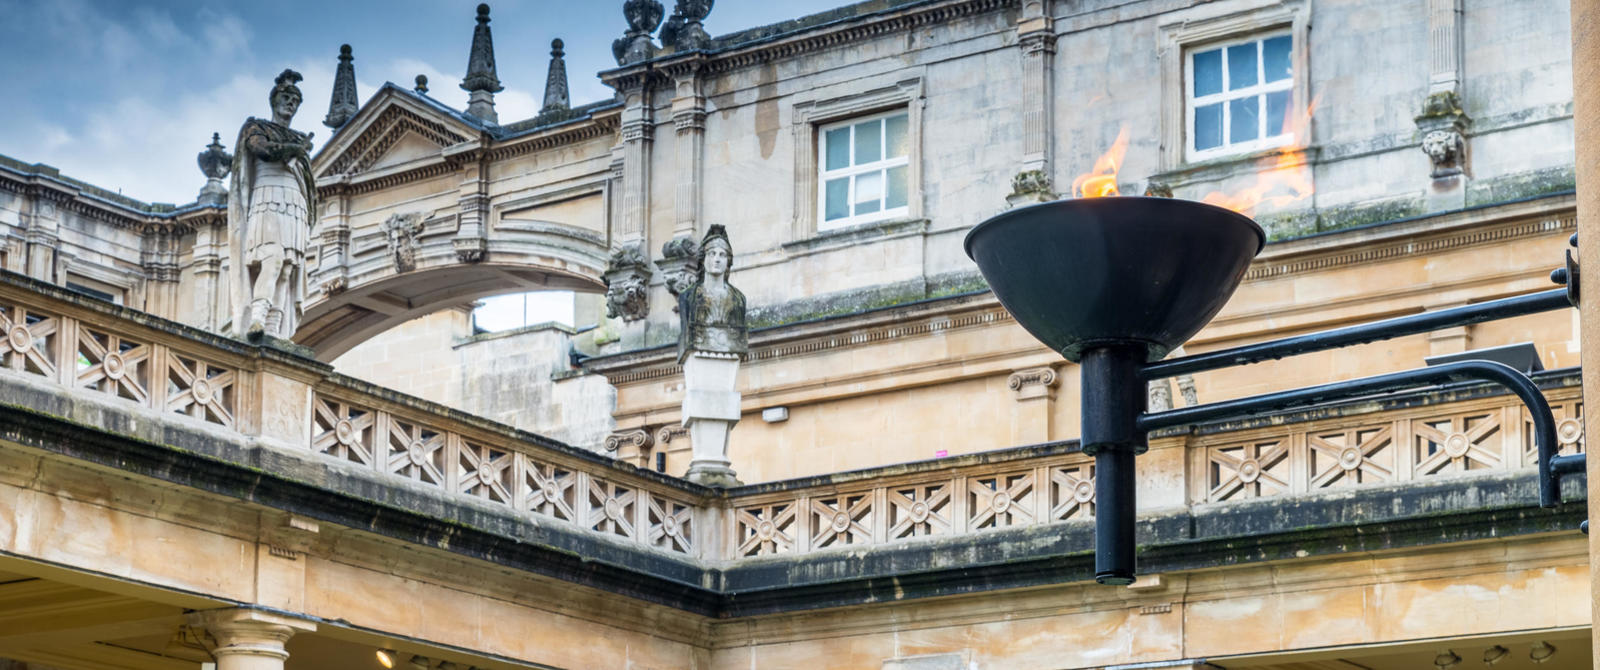 Image: Torch beside the Great Bath